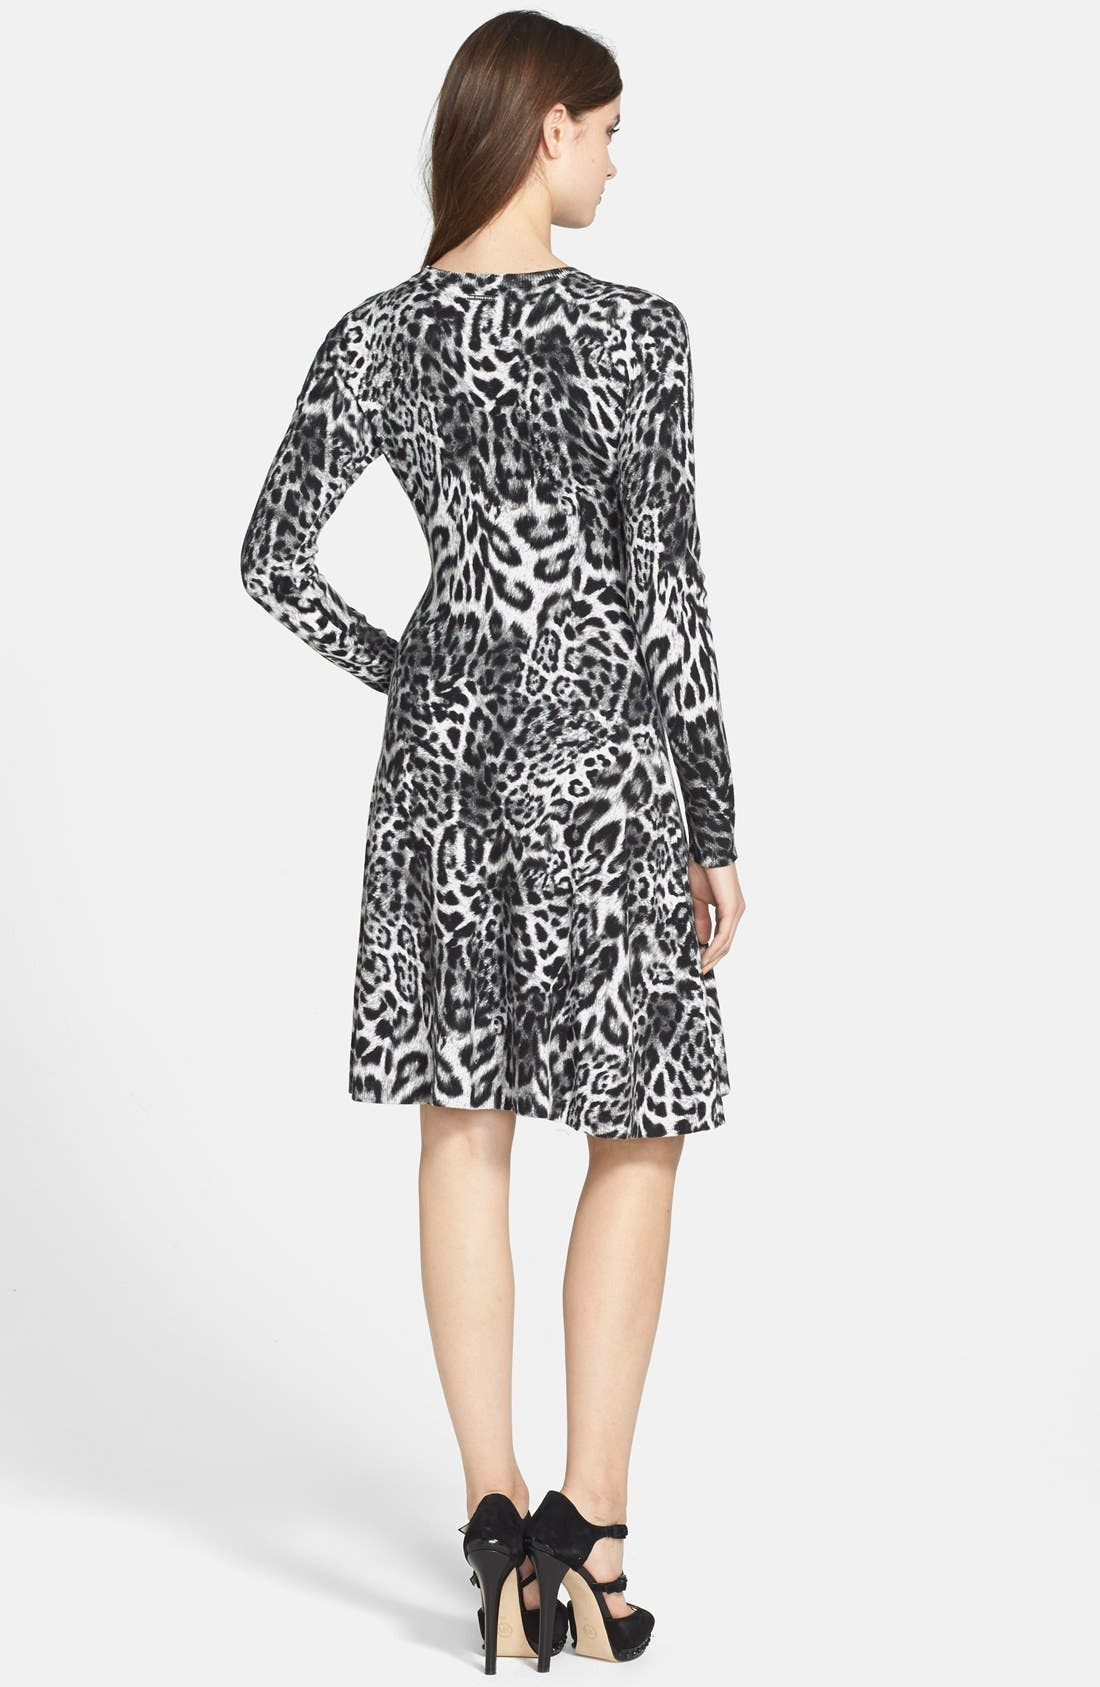 MICHAEL MICHAEL KORS, 'Fremont' Leopard Print Fit & Flare Dress, Alternate thumbnail 3, color, 001